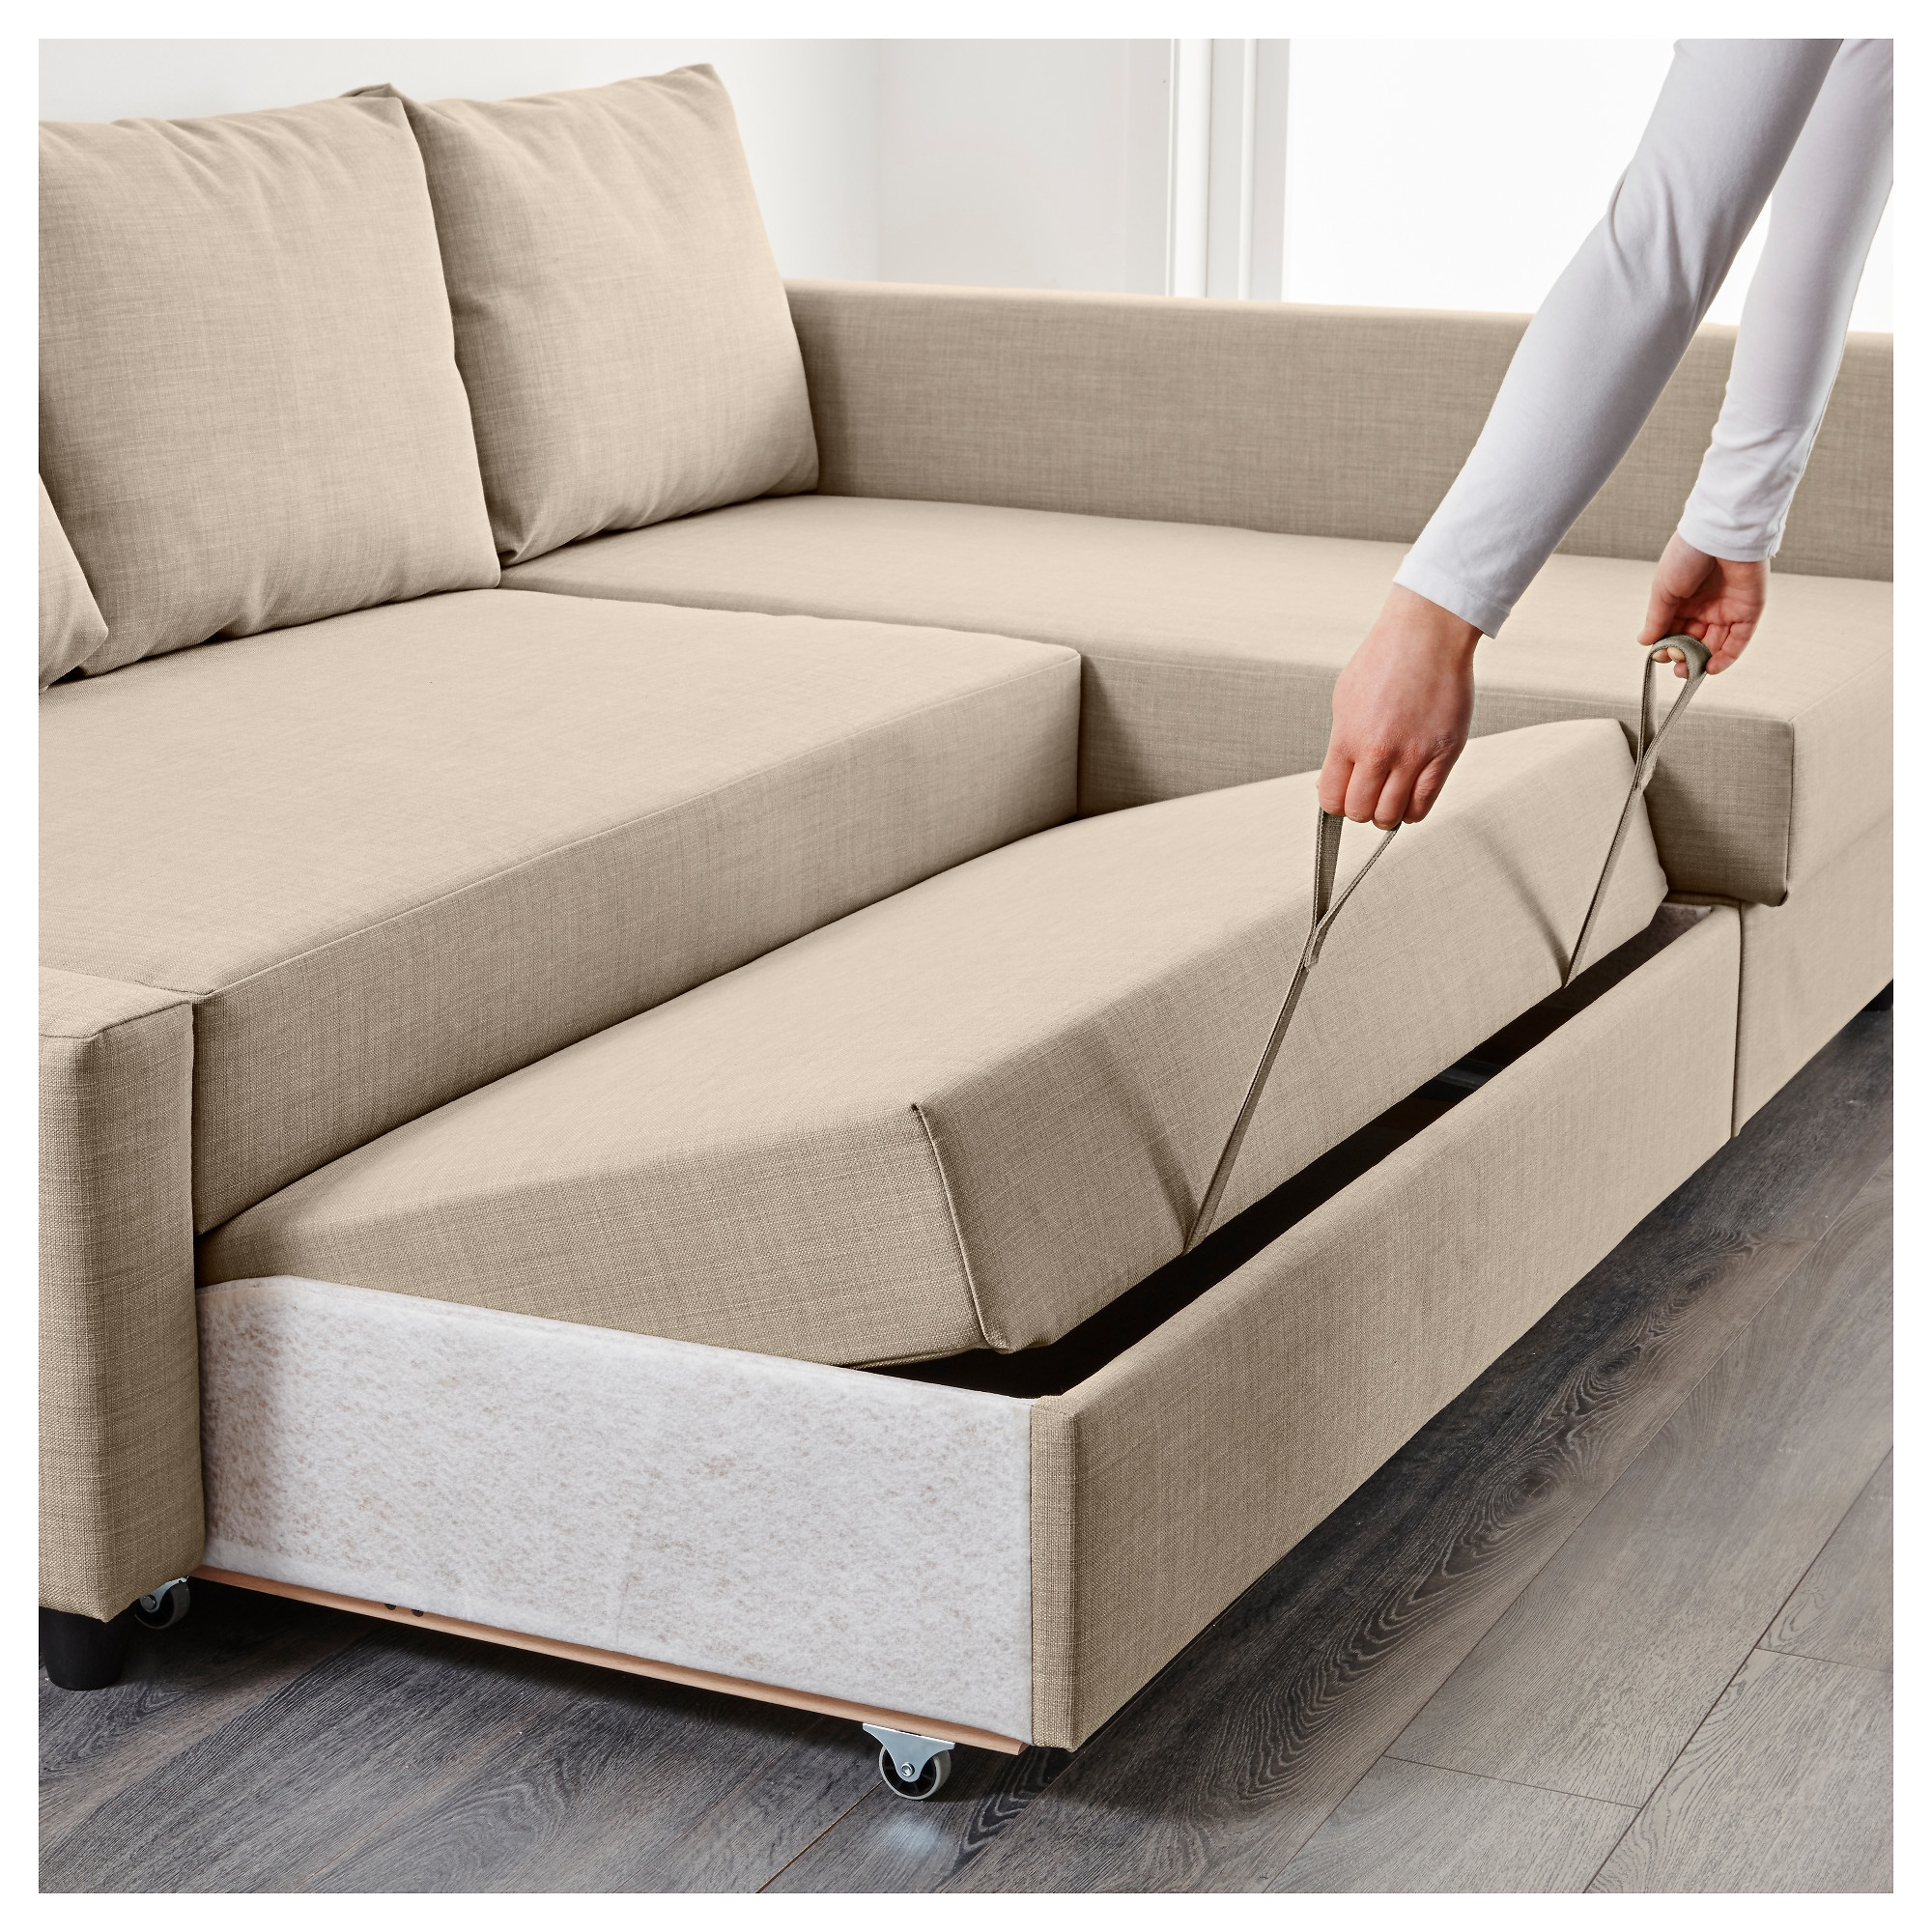 Fashionable Friheten Corner Sofa Bed With Storage Skiftebo Beige – Ikea In Ikea Corner Sofas With Storage (View 4 of 15)